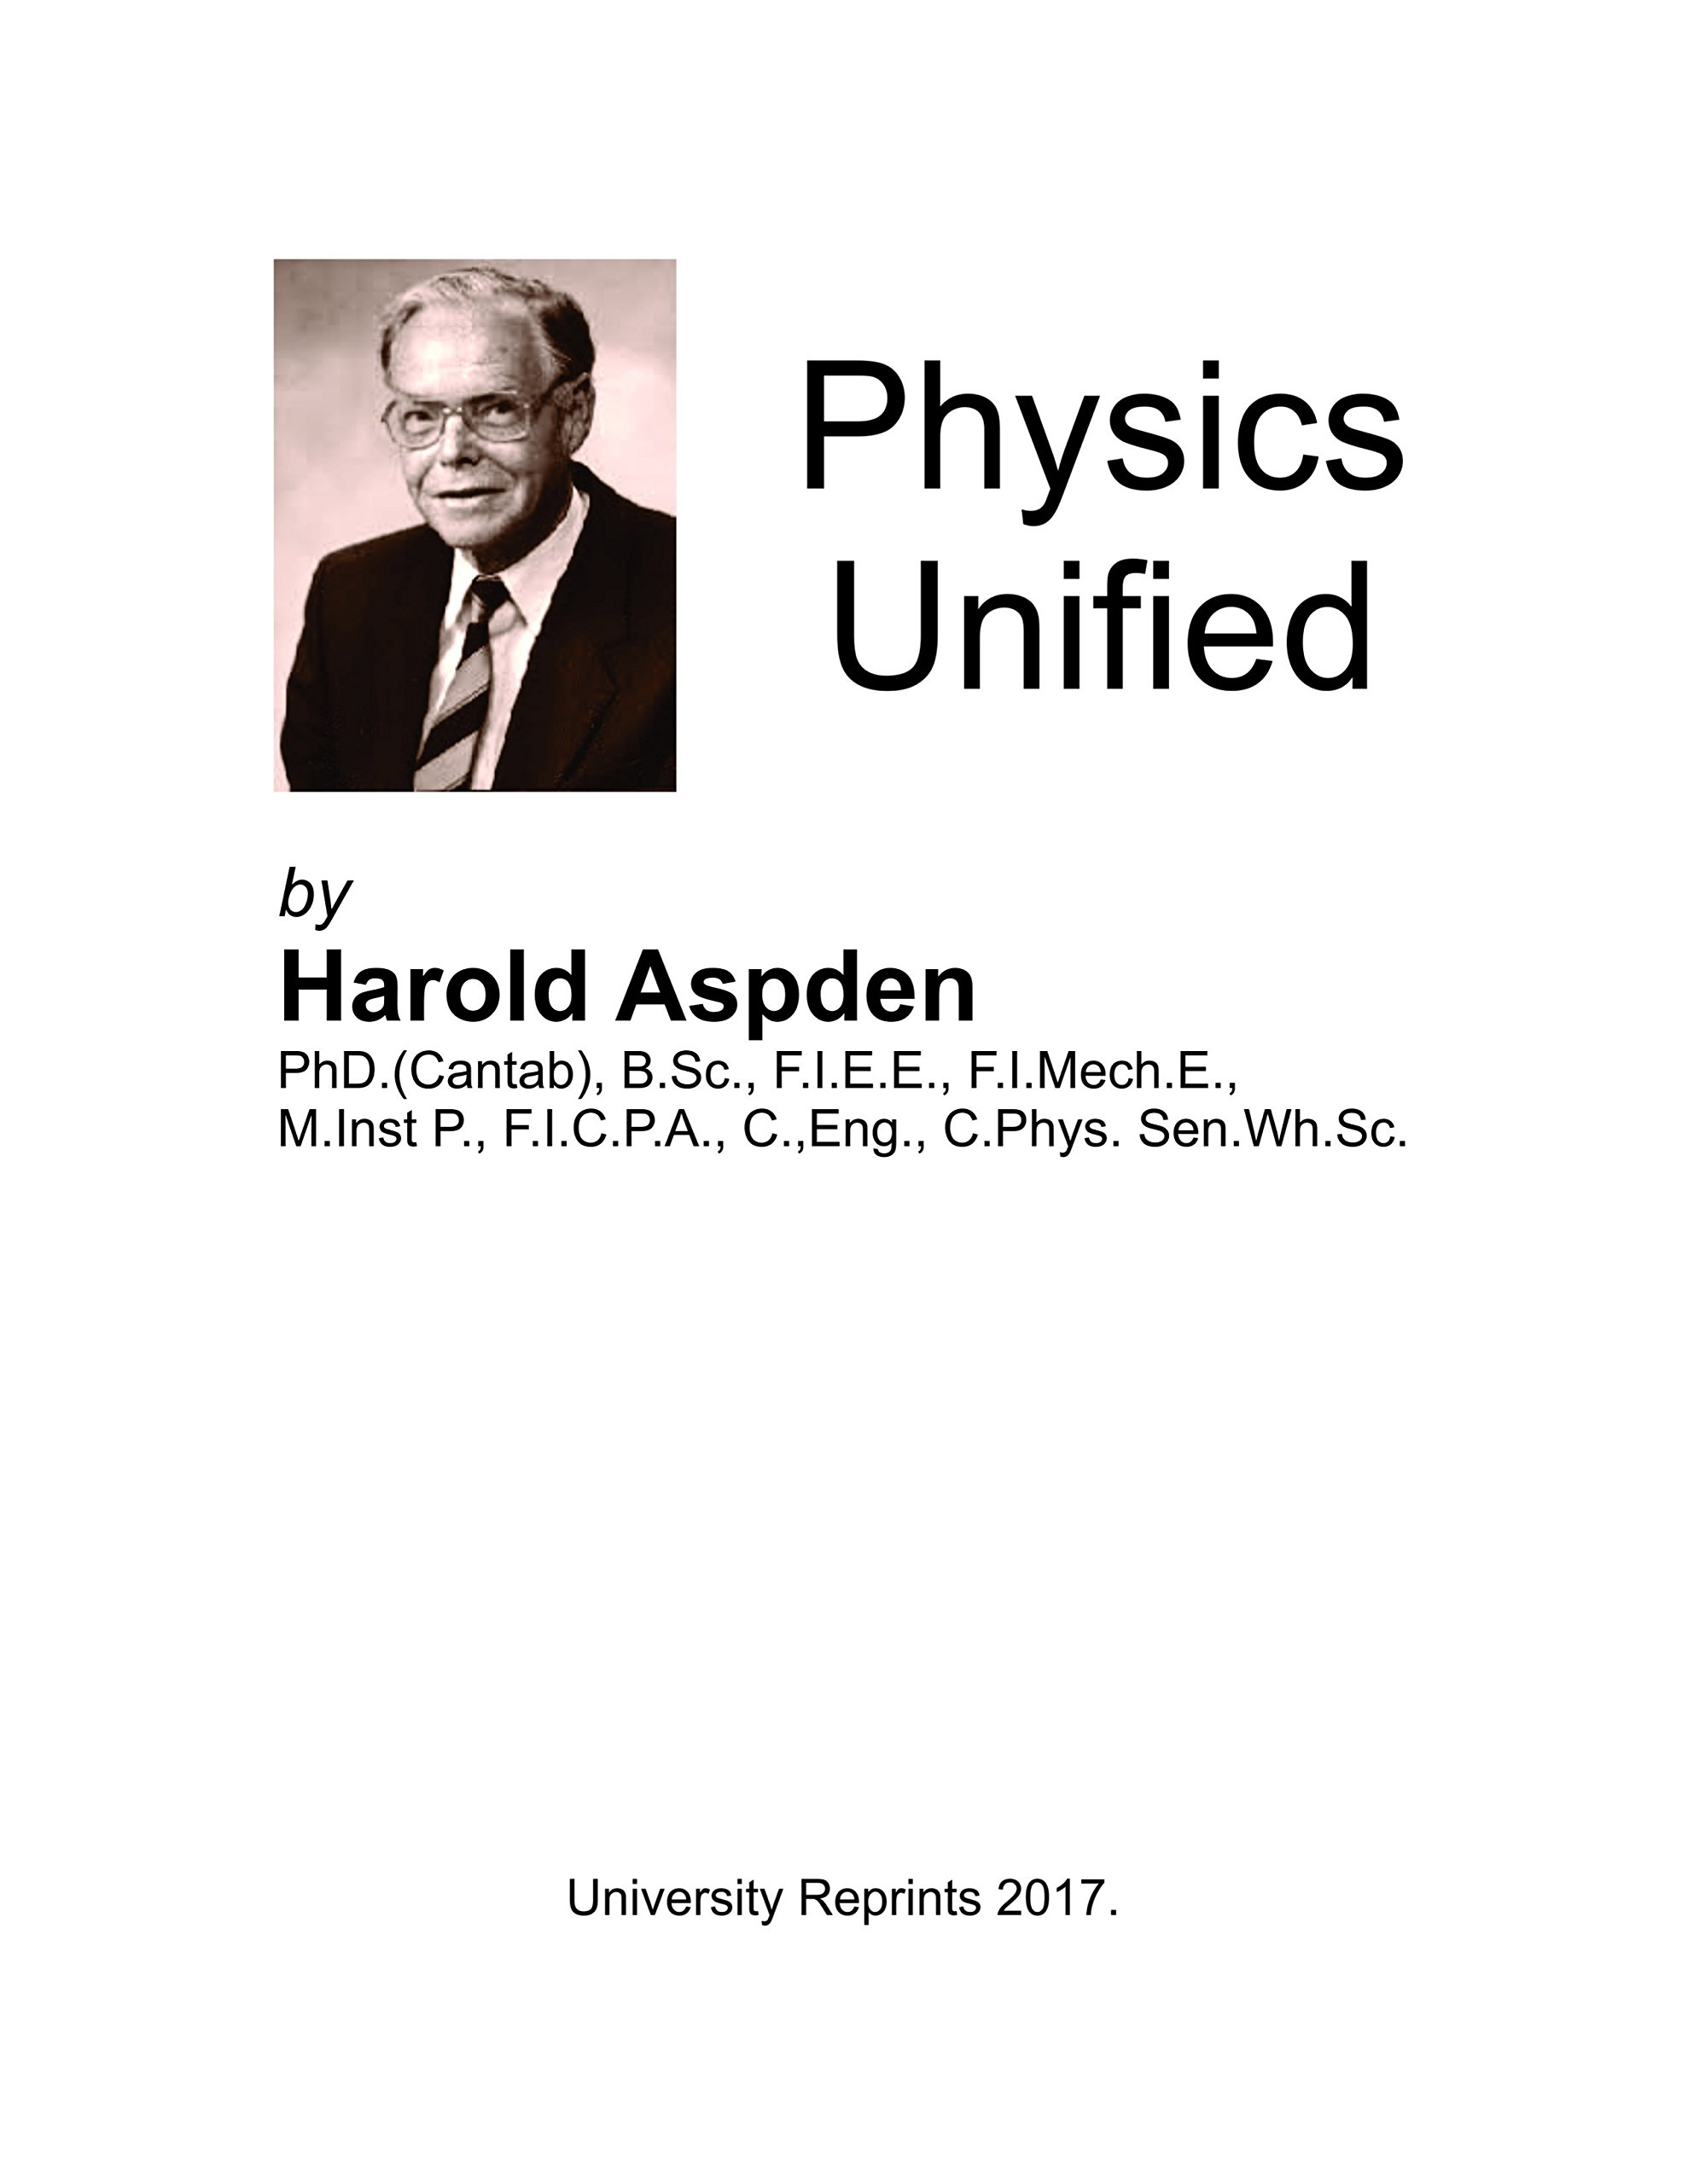 PHYSICS UNIFIED by Dr. Harold Aspden [Loose Leaf Created from Original Edition. Graphically Enhanced.] pdf